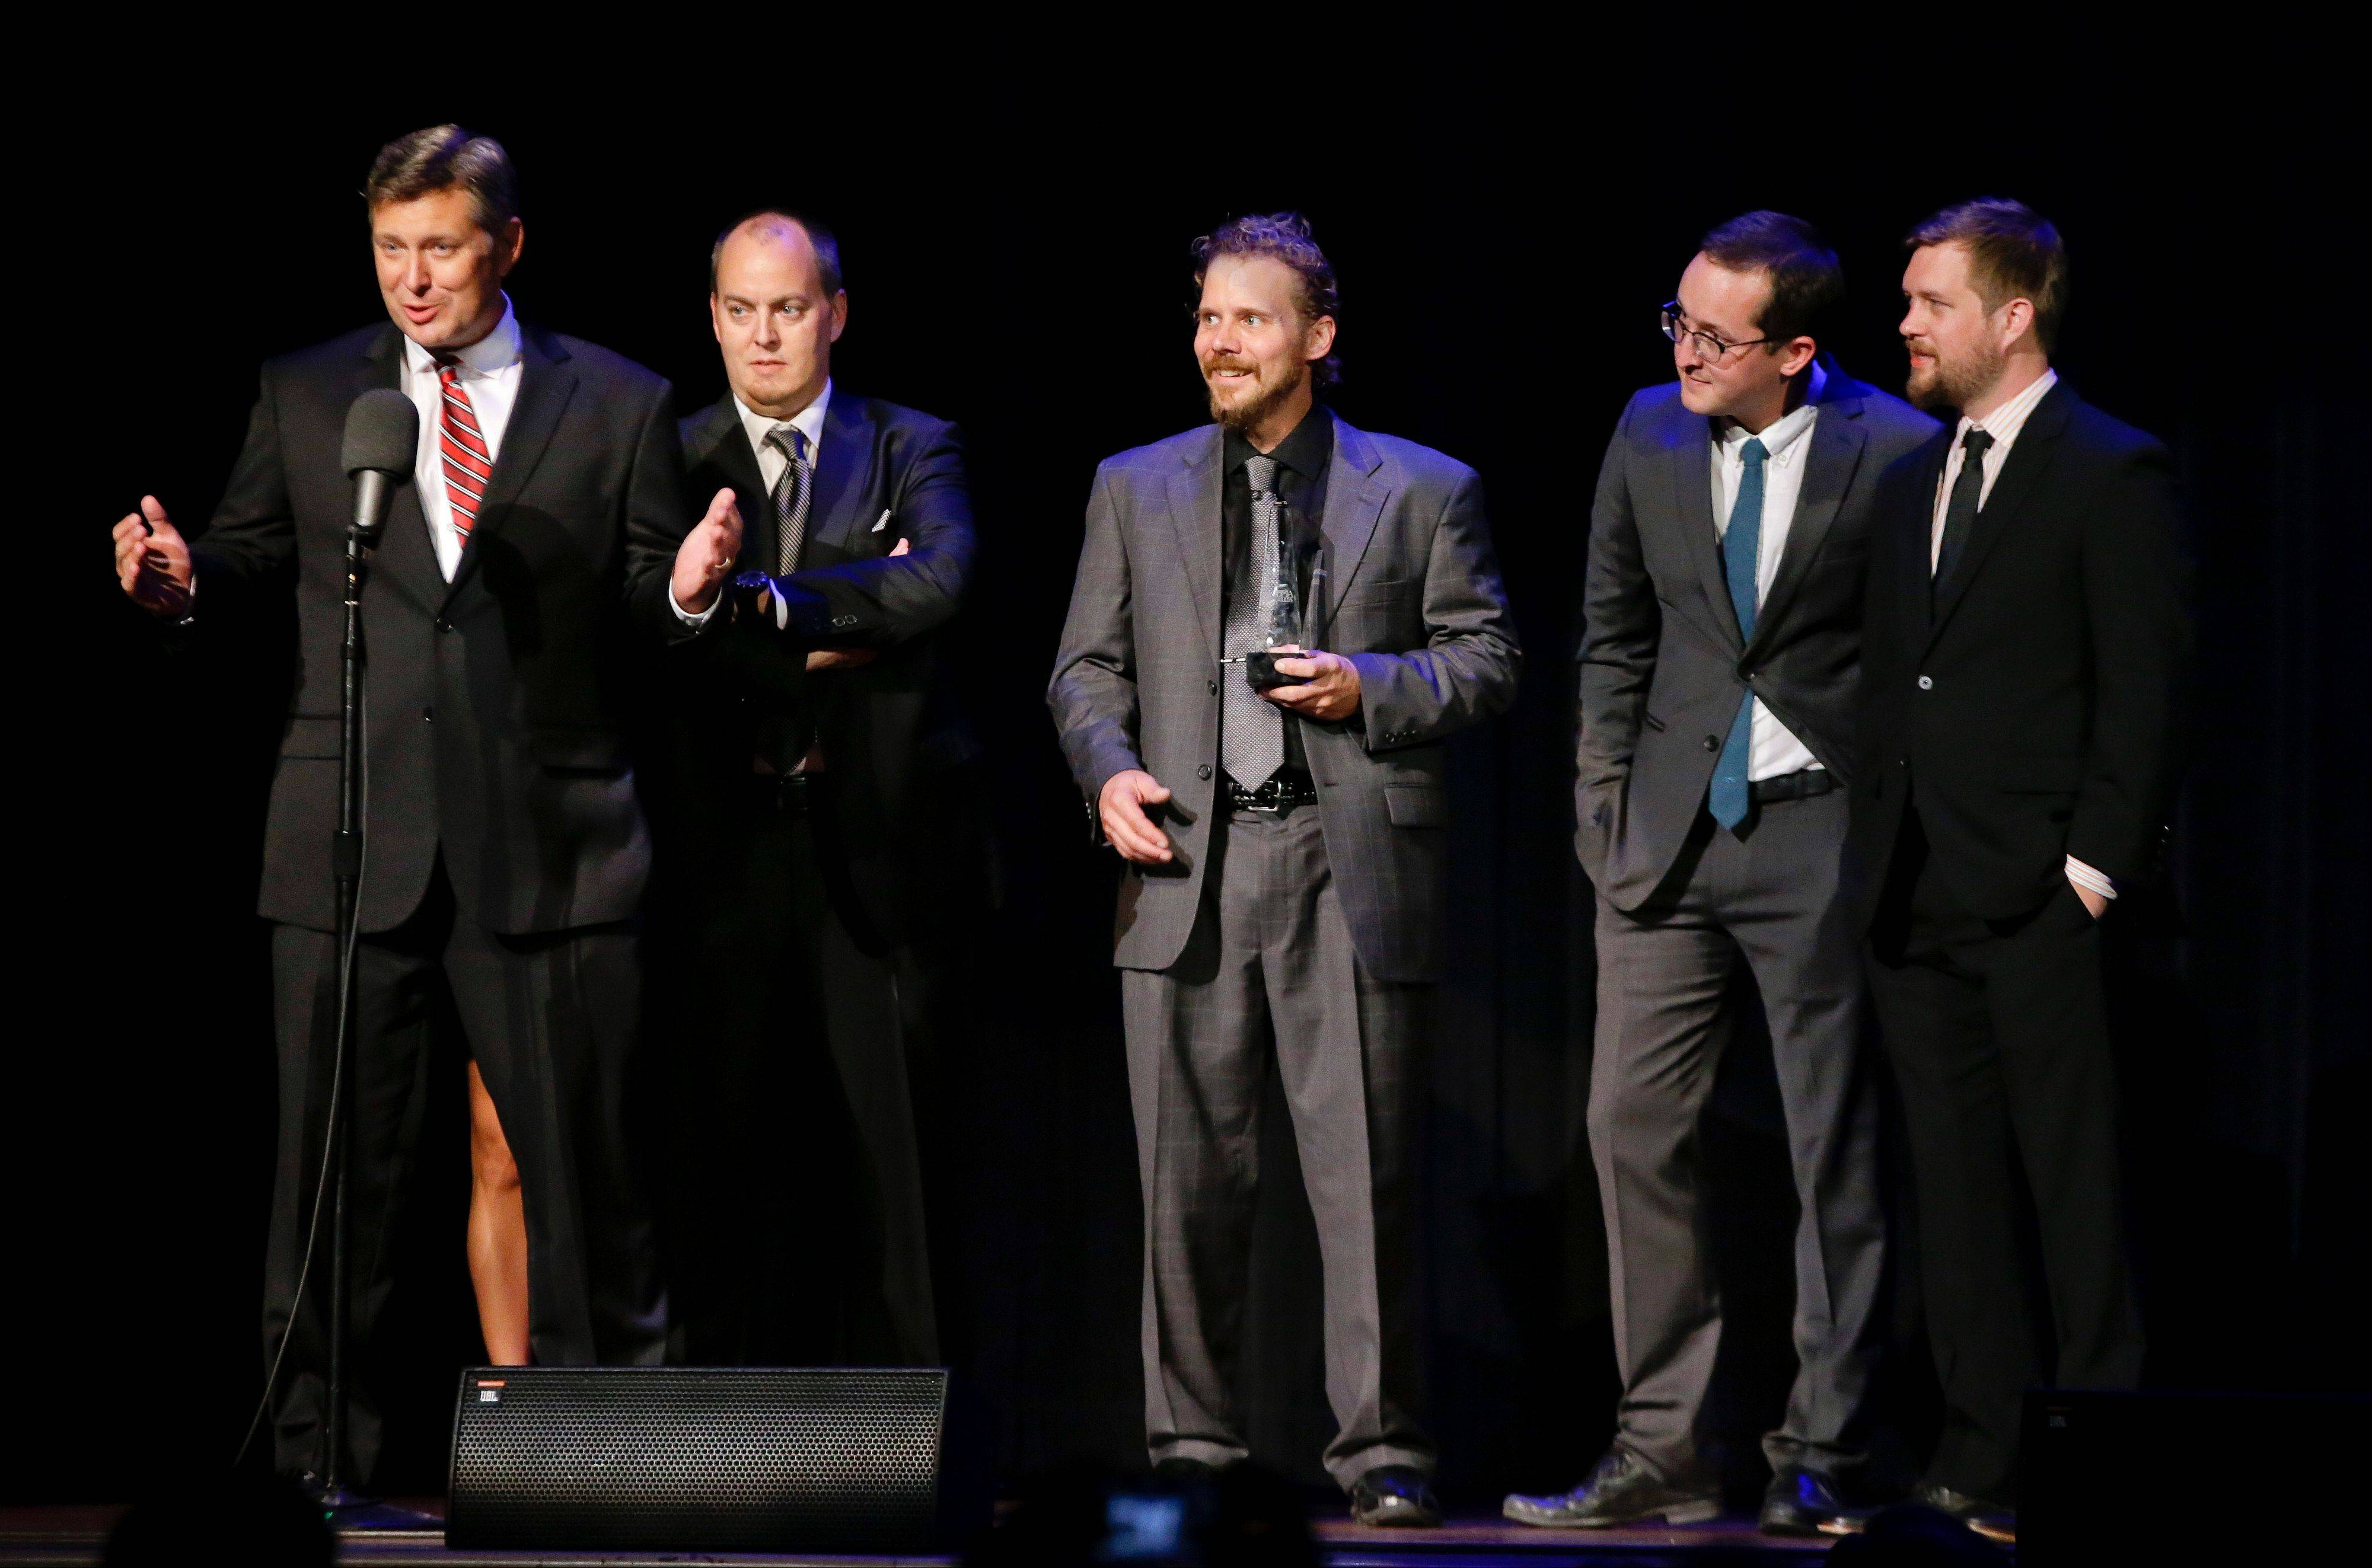 The Gibson Brothers have won entertainer of the year for a second straight year at the International Bluegrass Music Awards Thursday, Sept. 26, 2013, as well as three other group and individual trophies.